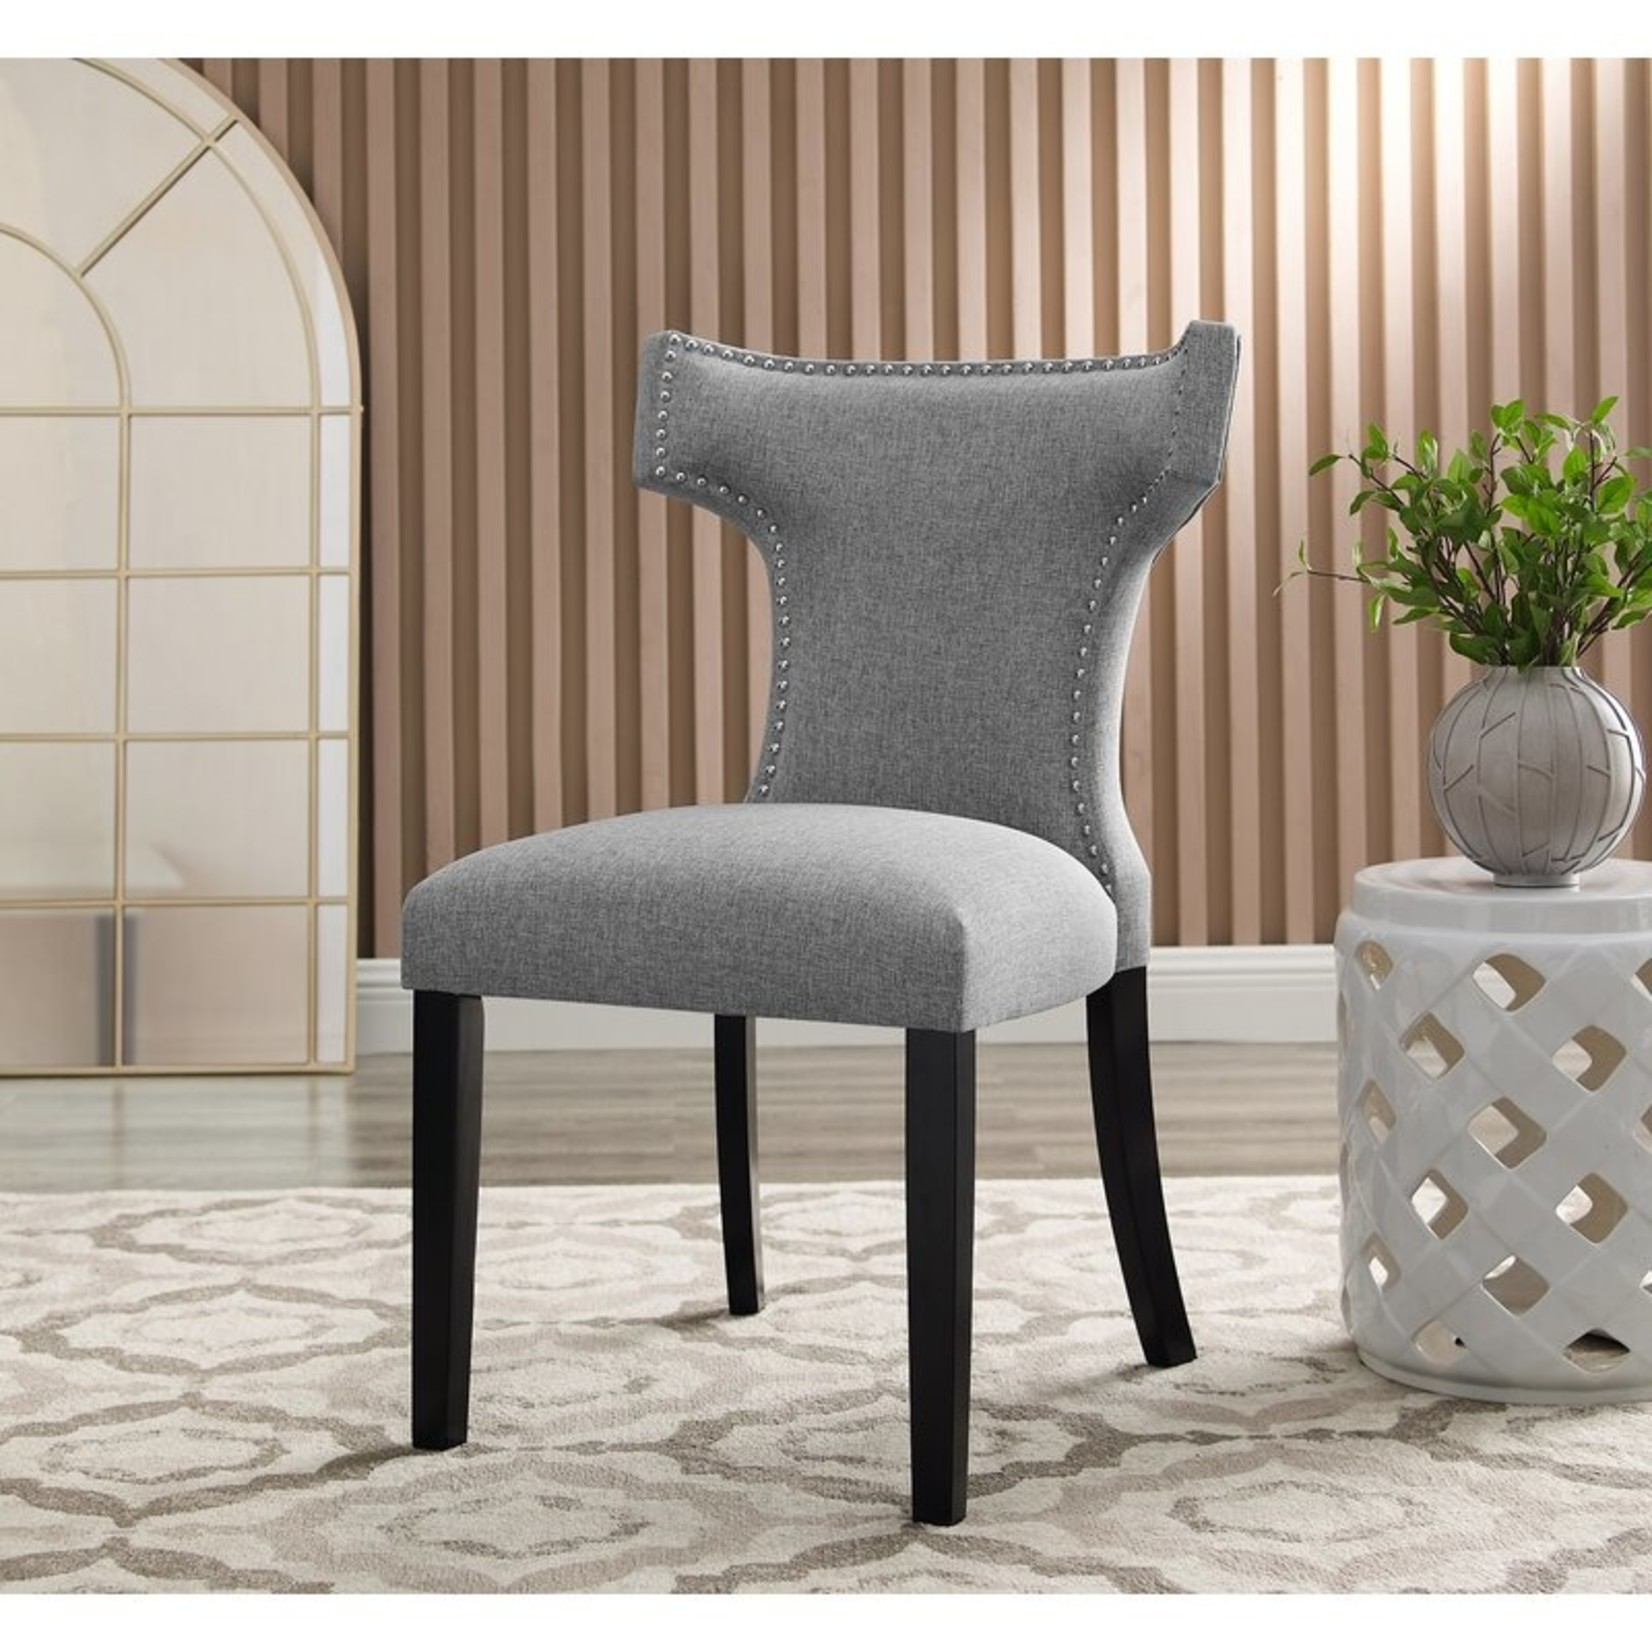 *Vensey Linen Wingback Dining Chair - Set of 2